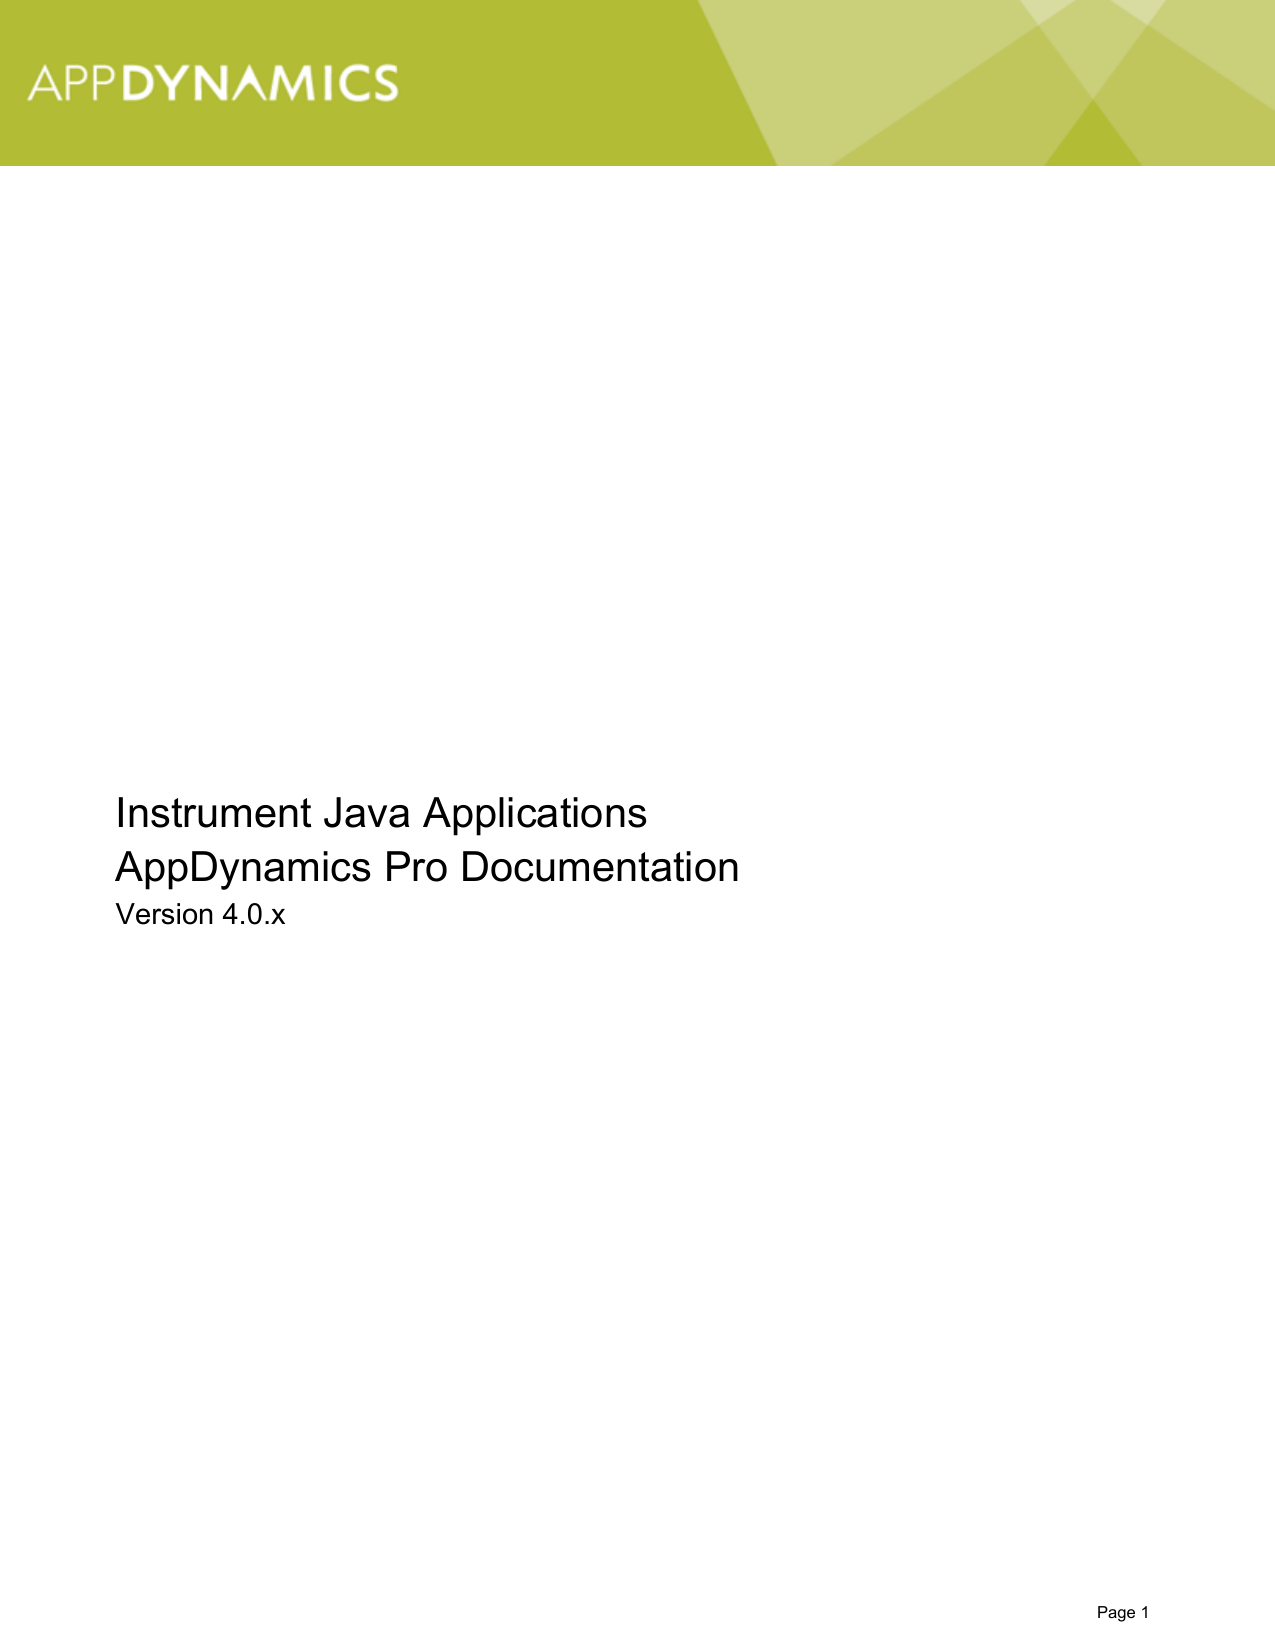 Instrument Java Applications AppDynamics Pro Documentation